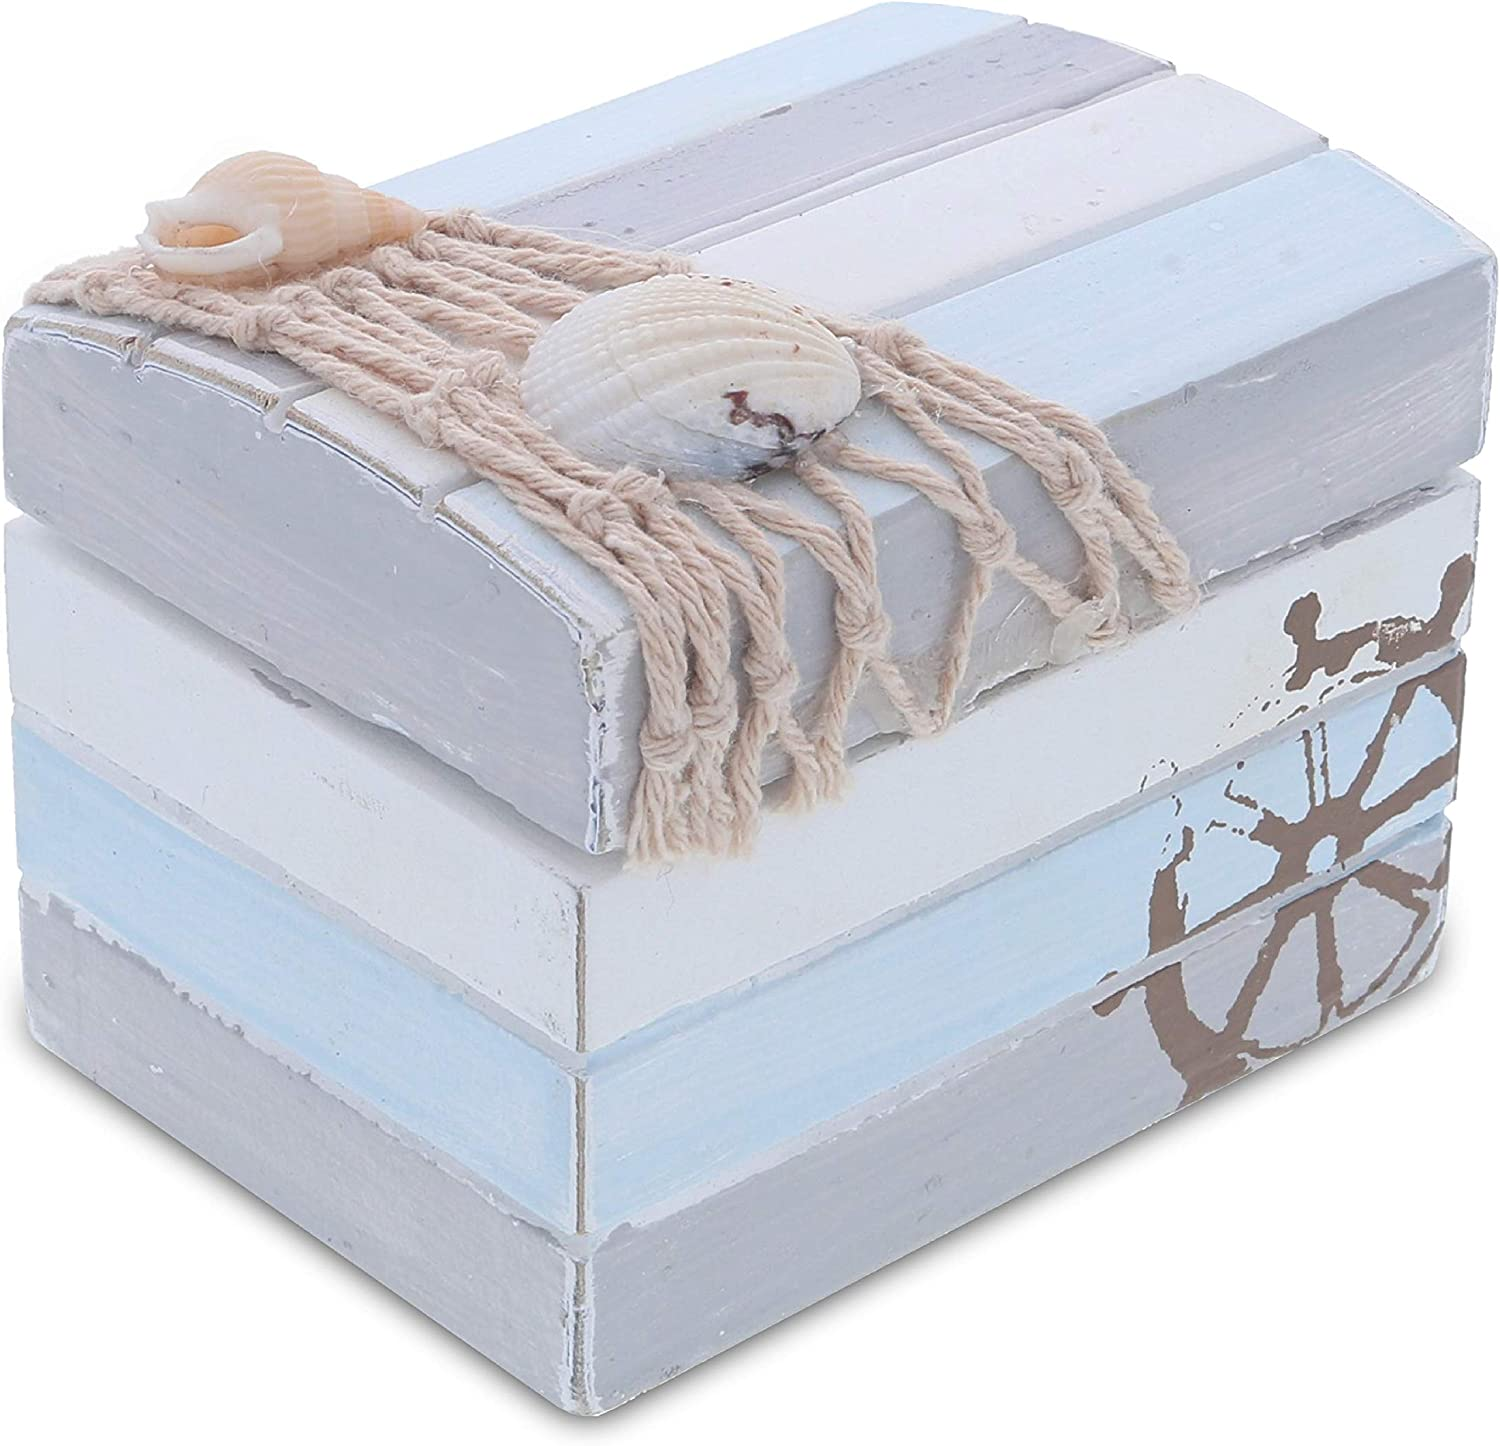 CoTa Global Moonlight Wooden Nautical Jewelry Box 3.7 Inch, Rustic Nautical Decor Trinket Storage with Hinged Lid, Beach Theme Decor & Ocean Party Decorations, Unique Beach Decor for Bedroom & Home